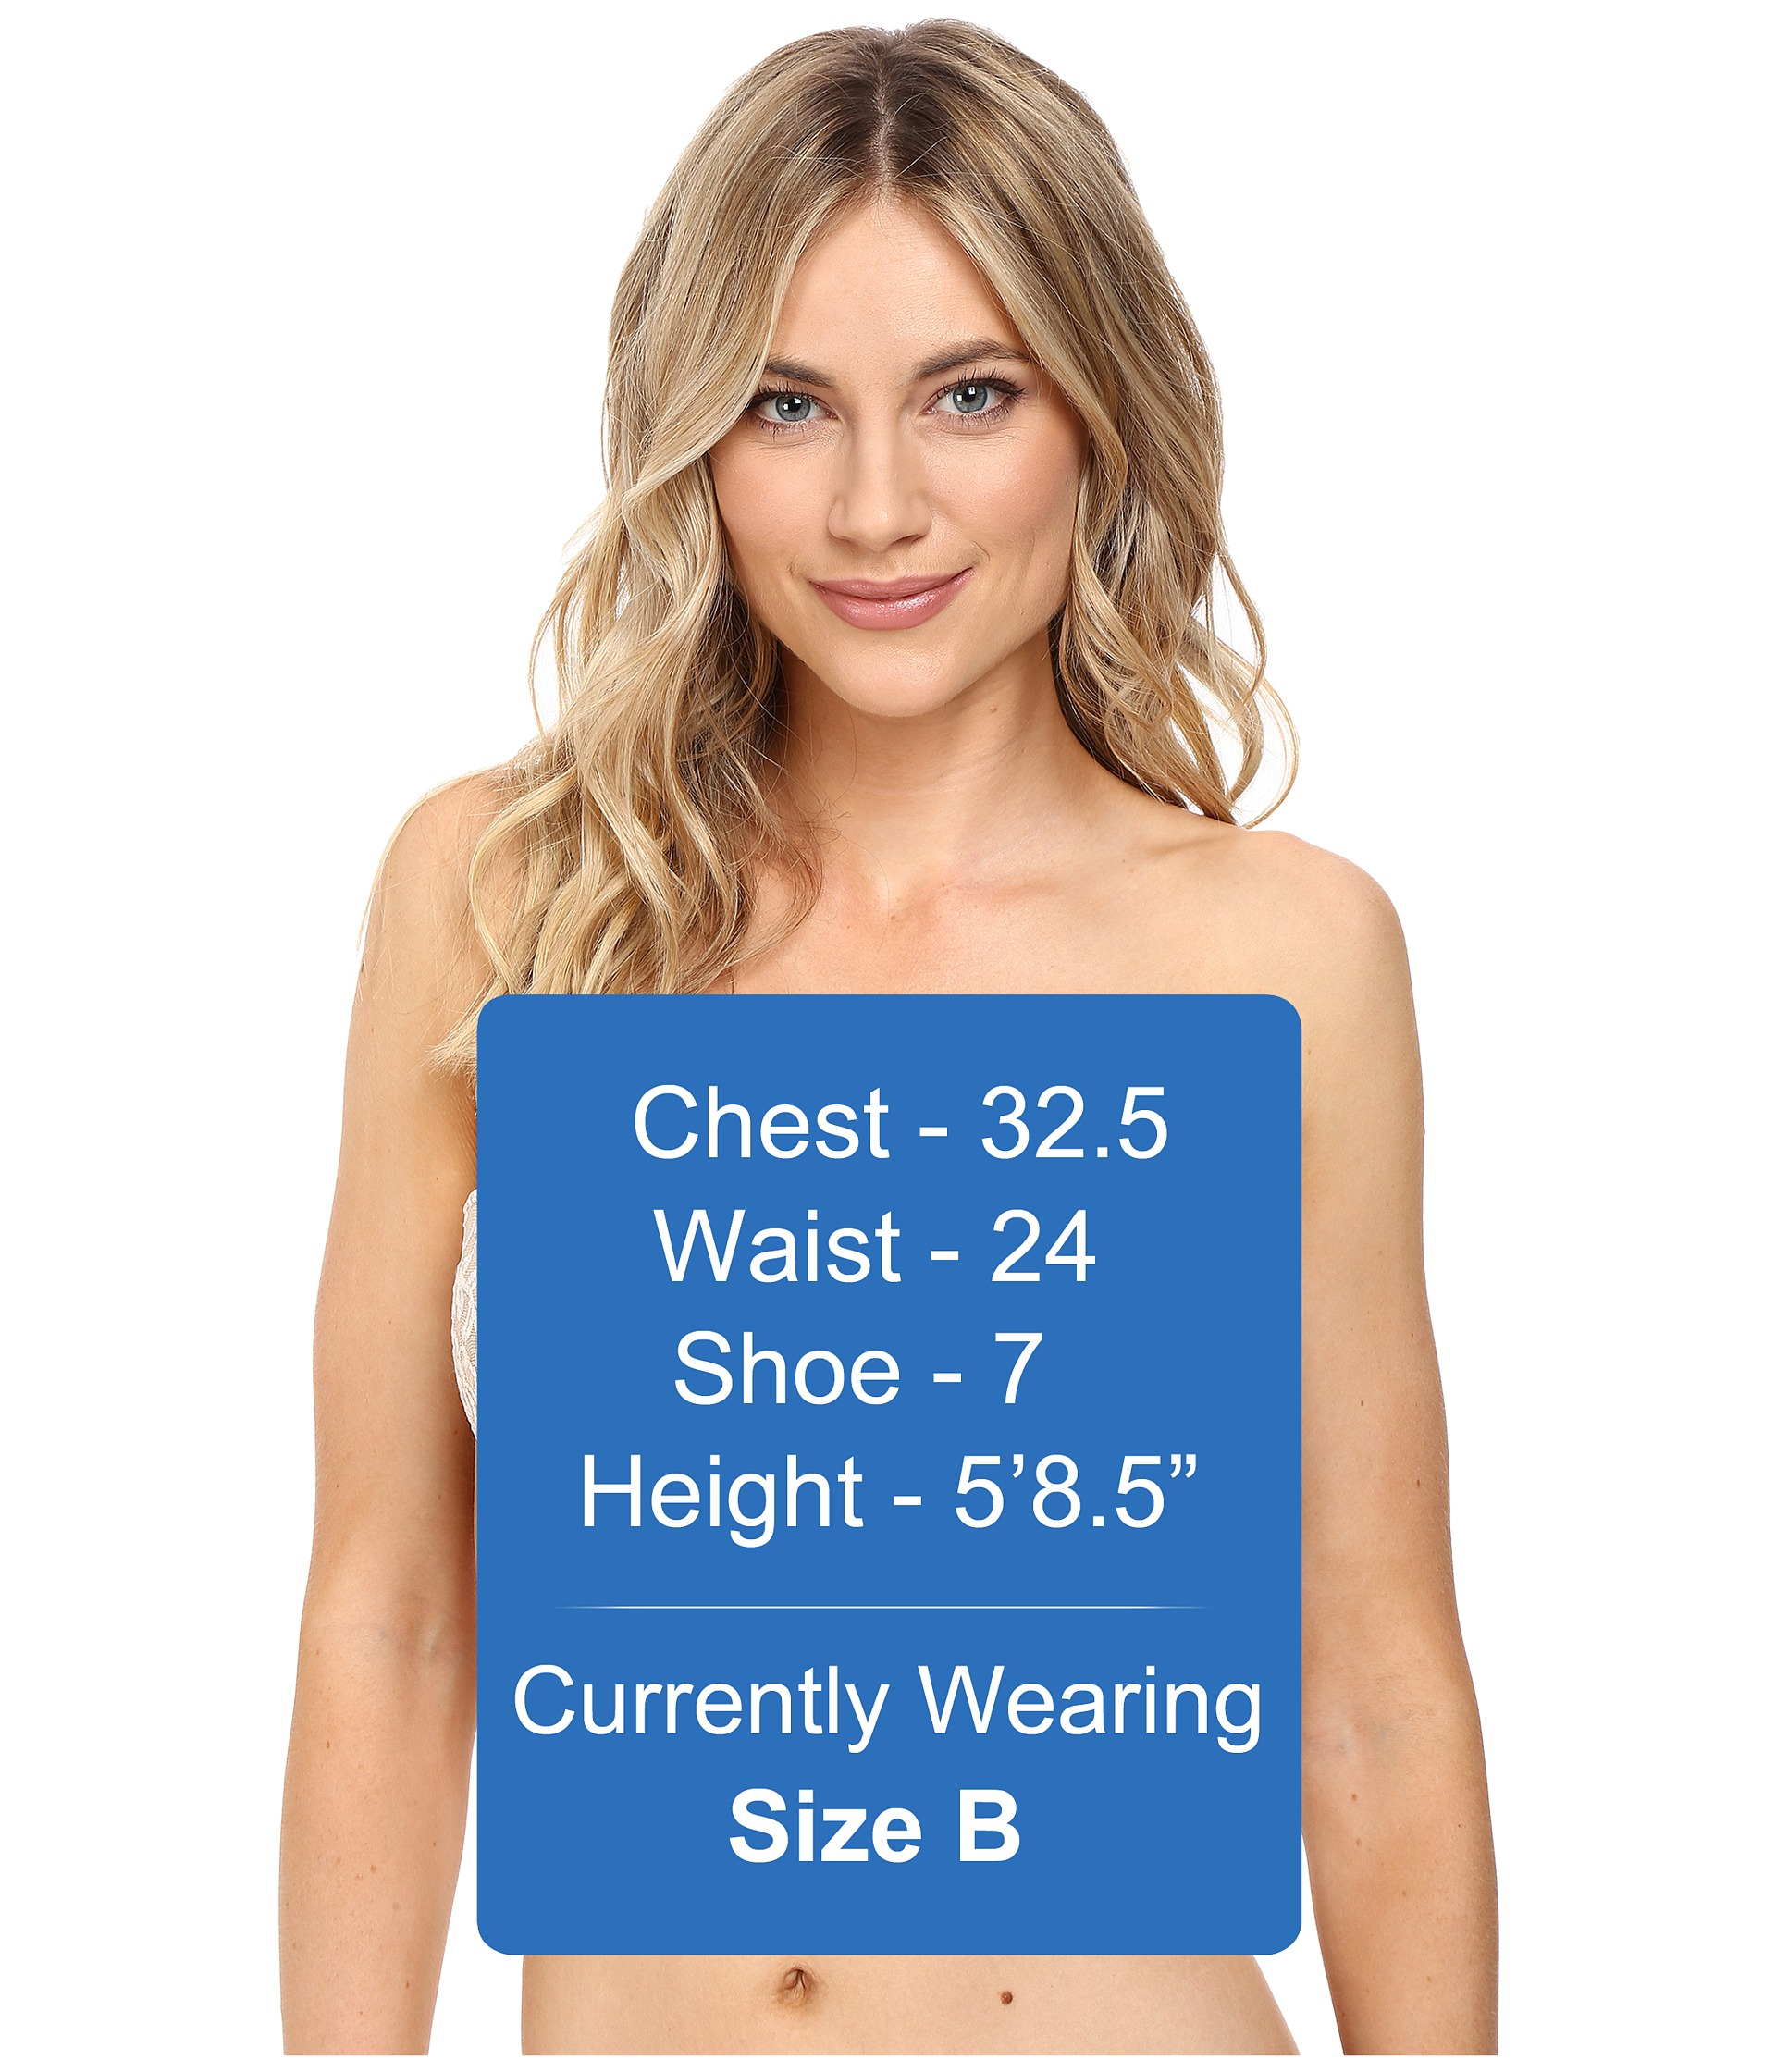 ultimate boost adhesive bra instructions